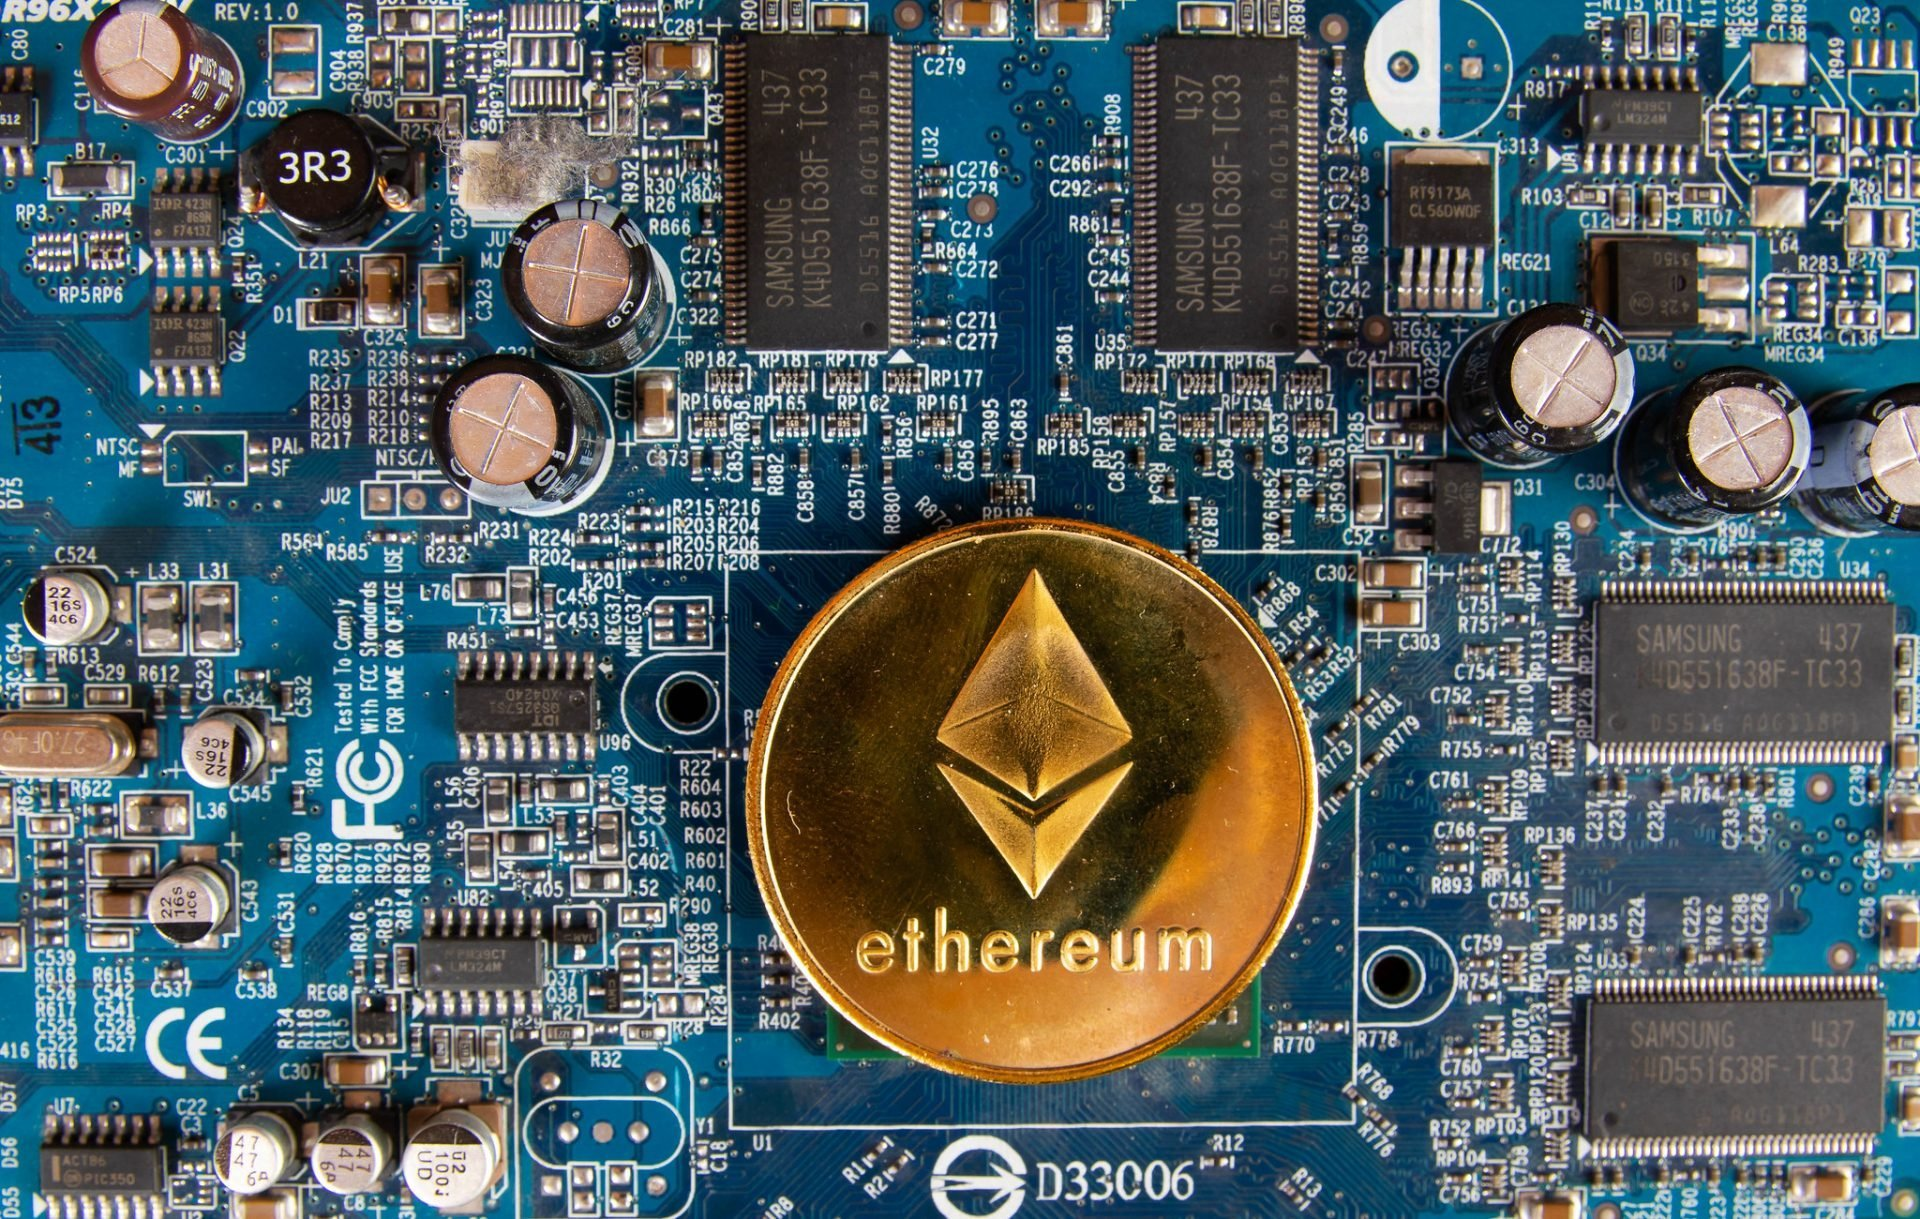 Ethereum's (ETH) Miner Revenue From Fees Surpasses Bitcoin's 17